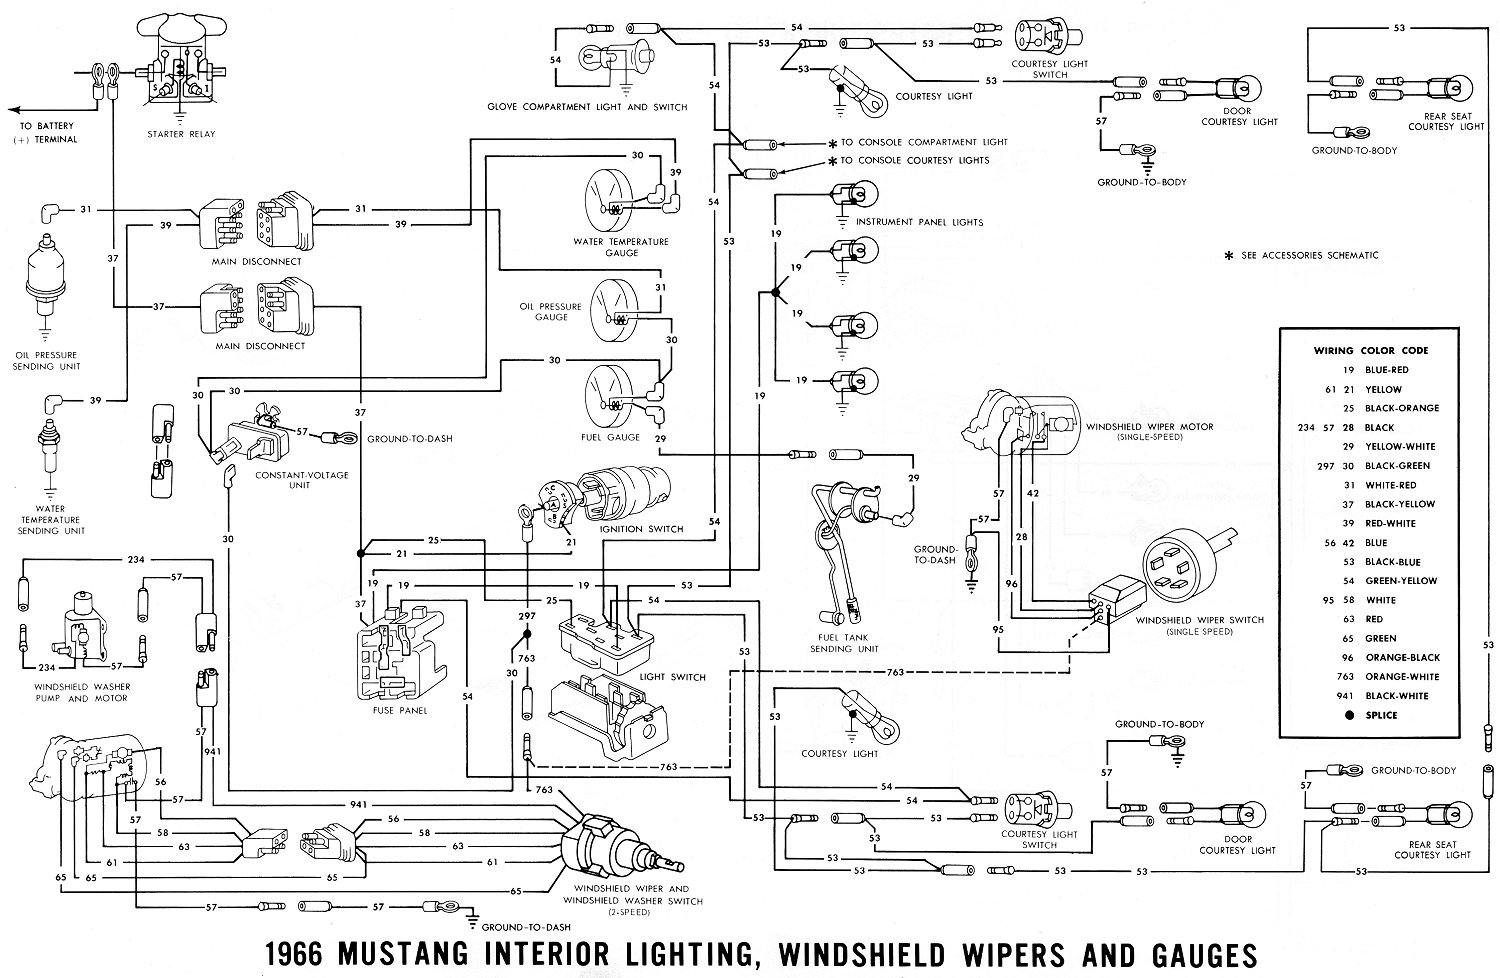 66inter1 1966 mustang wiring diagrams average joe restoration mustang wiring diagrams at gsmx.co